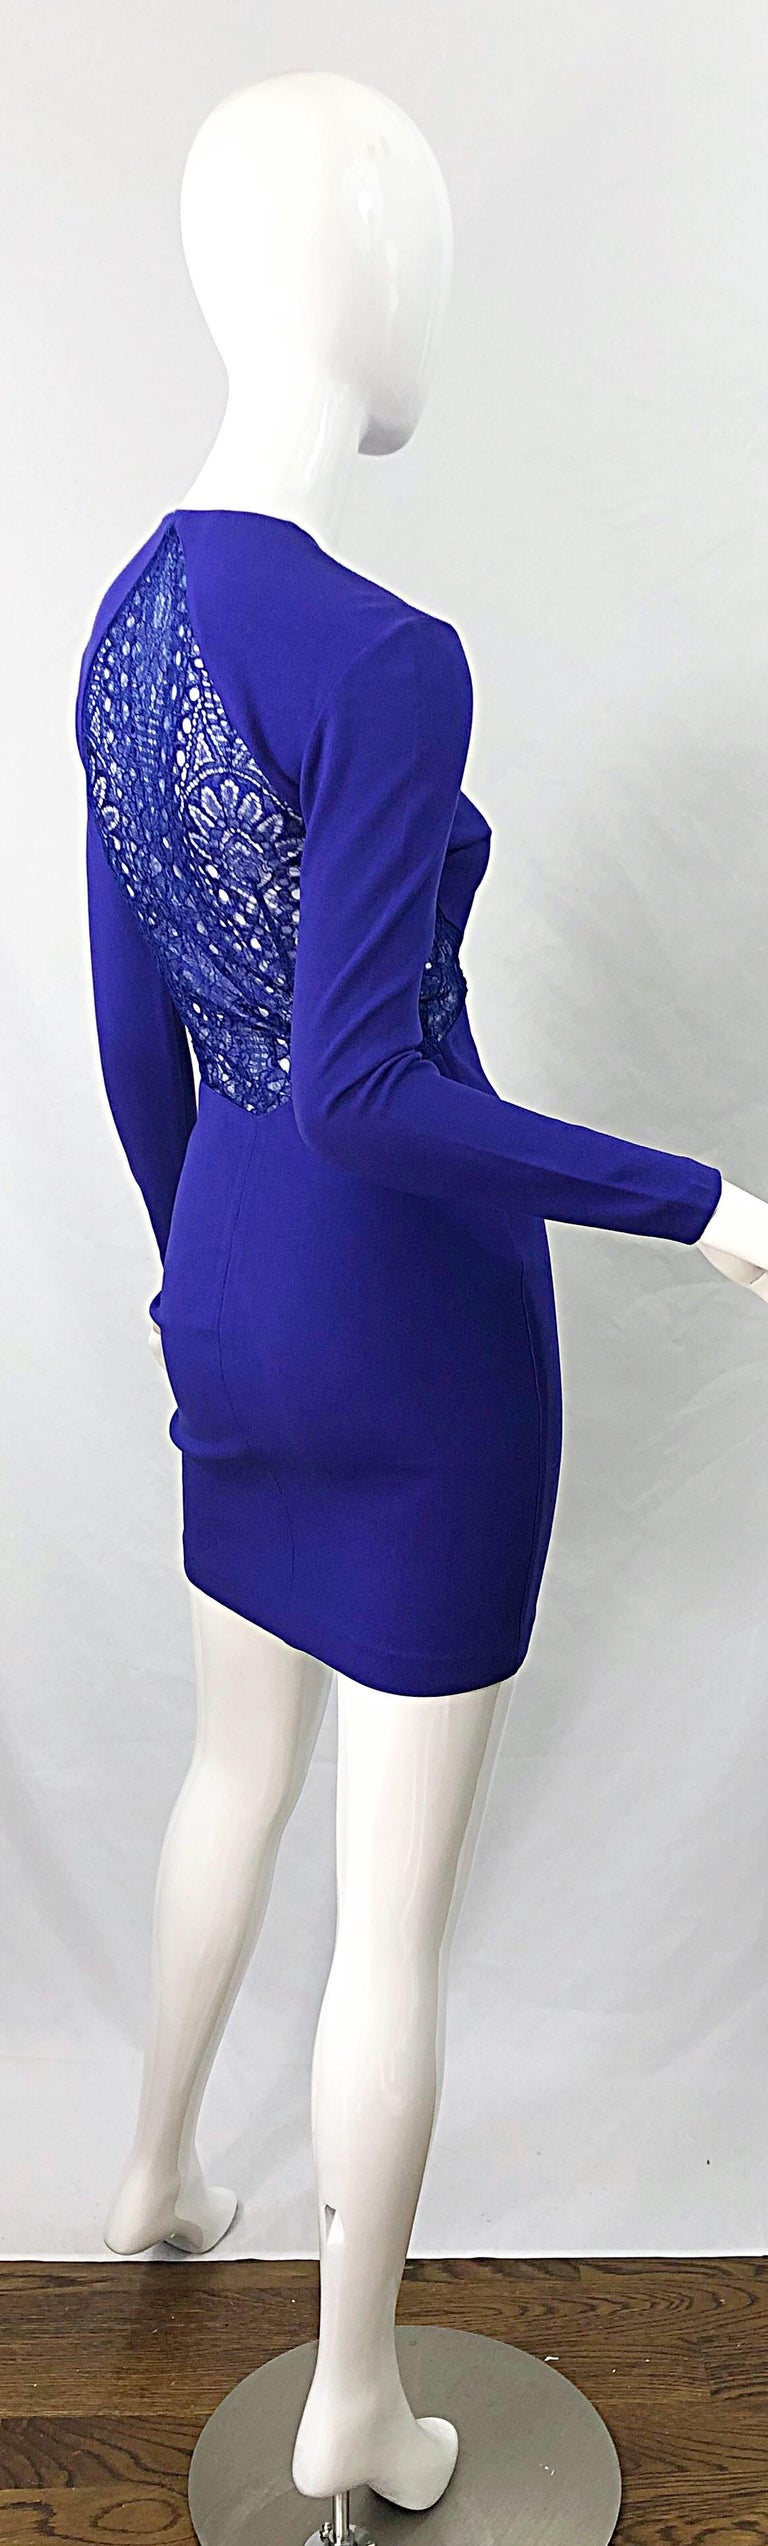 Women's Emilio Pucci Fall 2012 Purple Rayon Lace Cut Out Long Sleeve Bodycon Dress For Sale